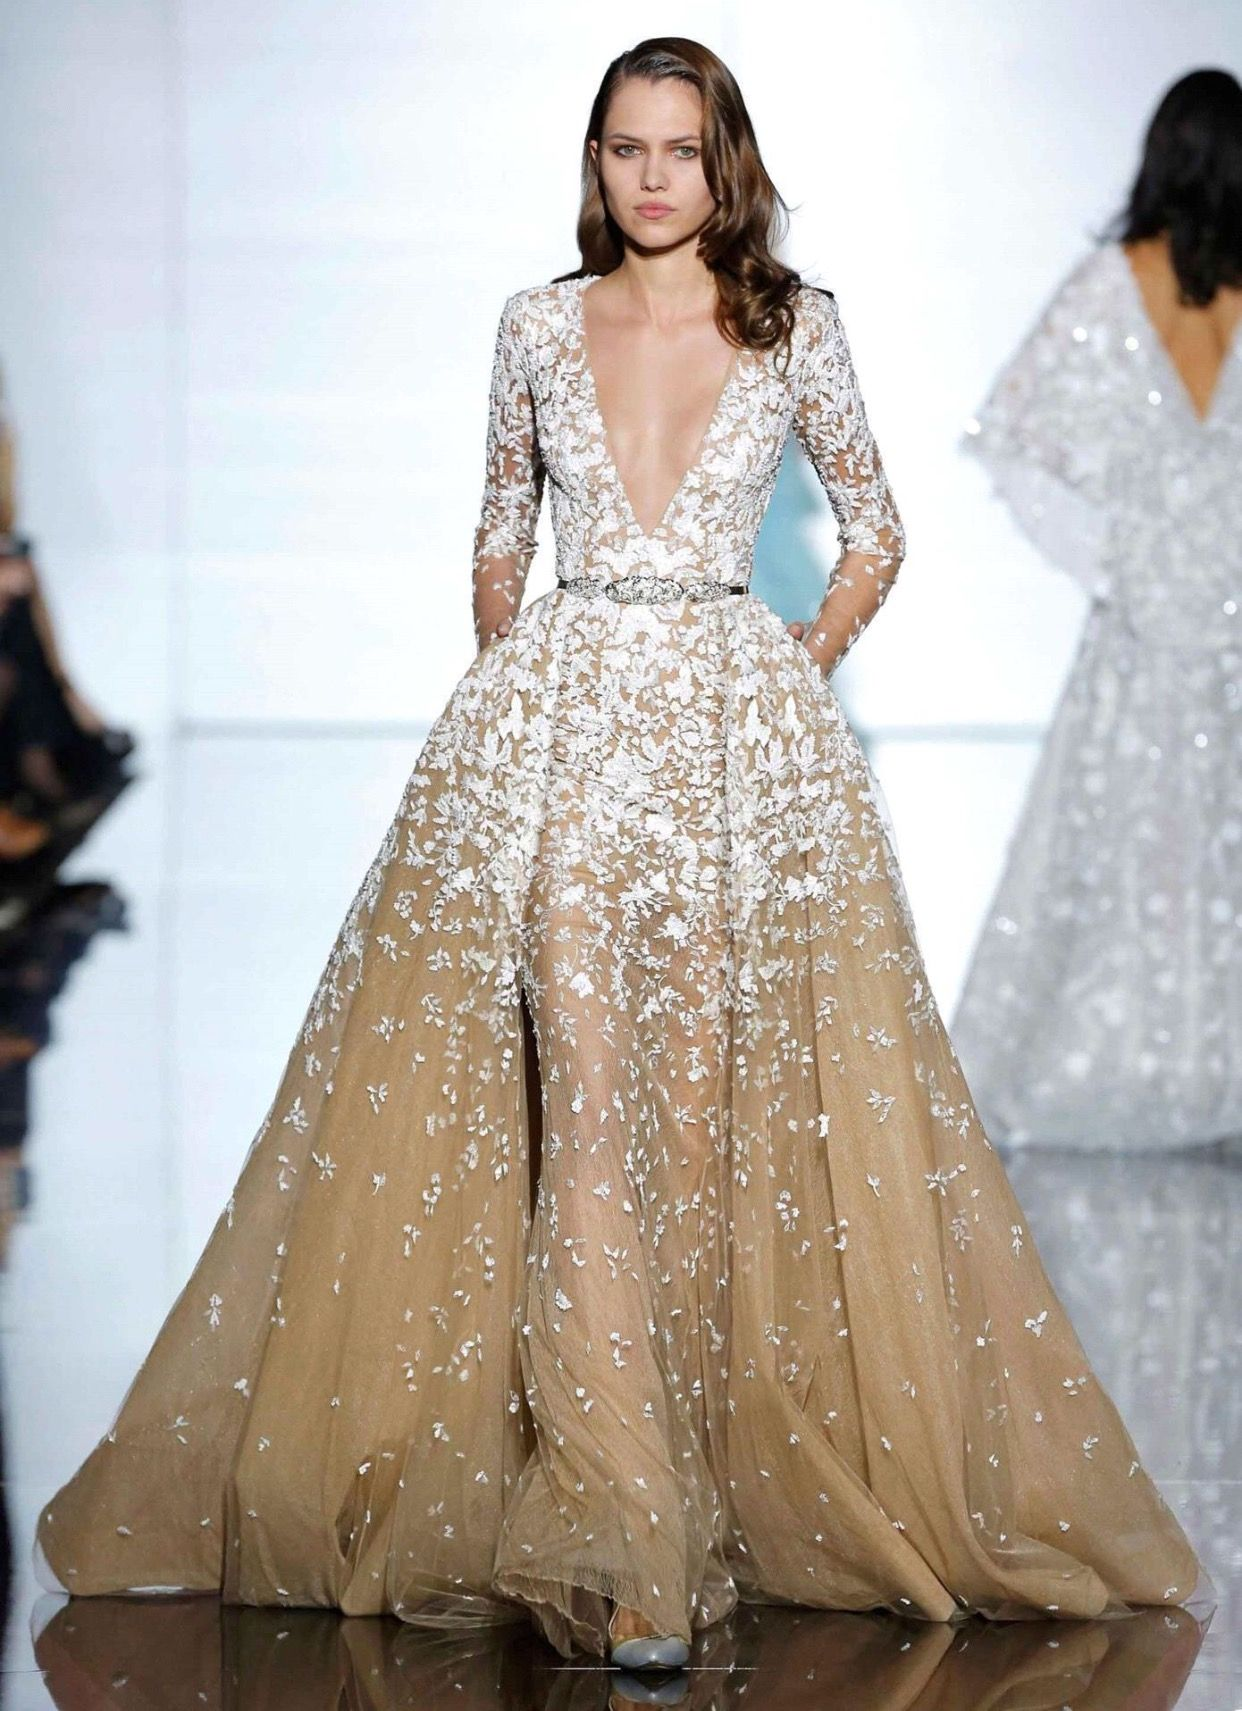 Pin by Nittaya on Gowns   Pinterest   Gowns